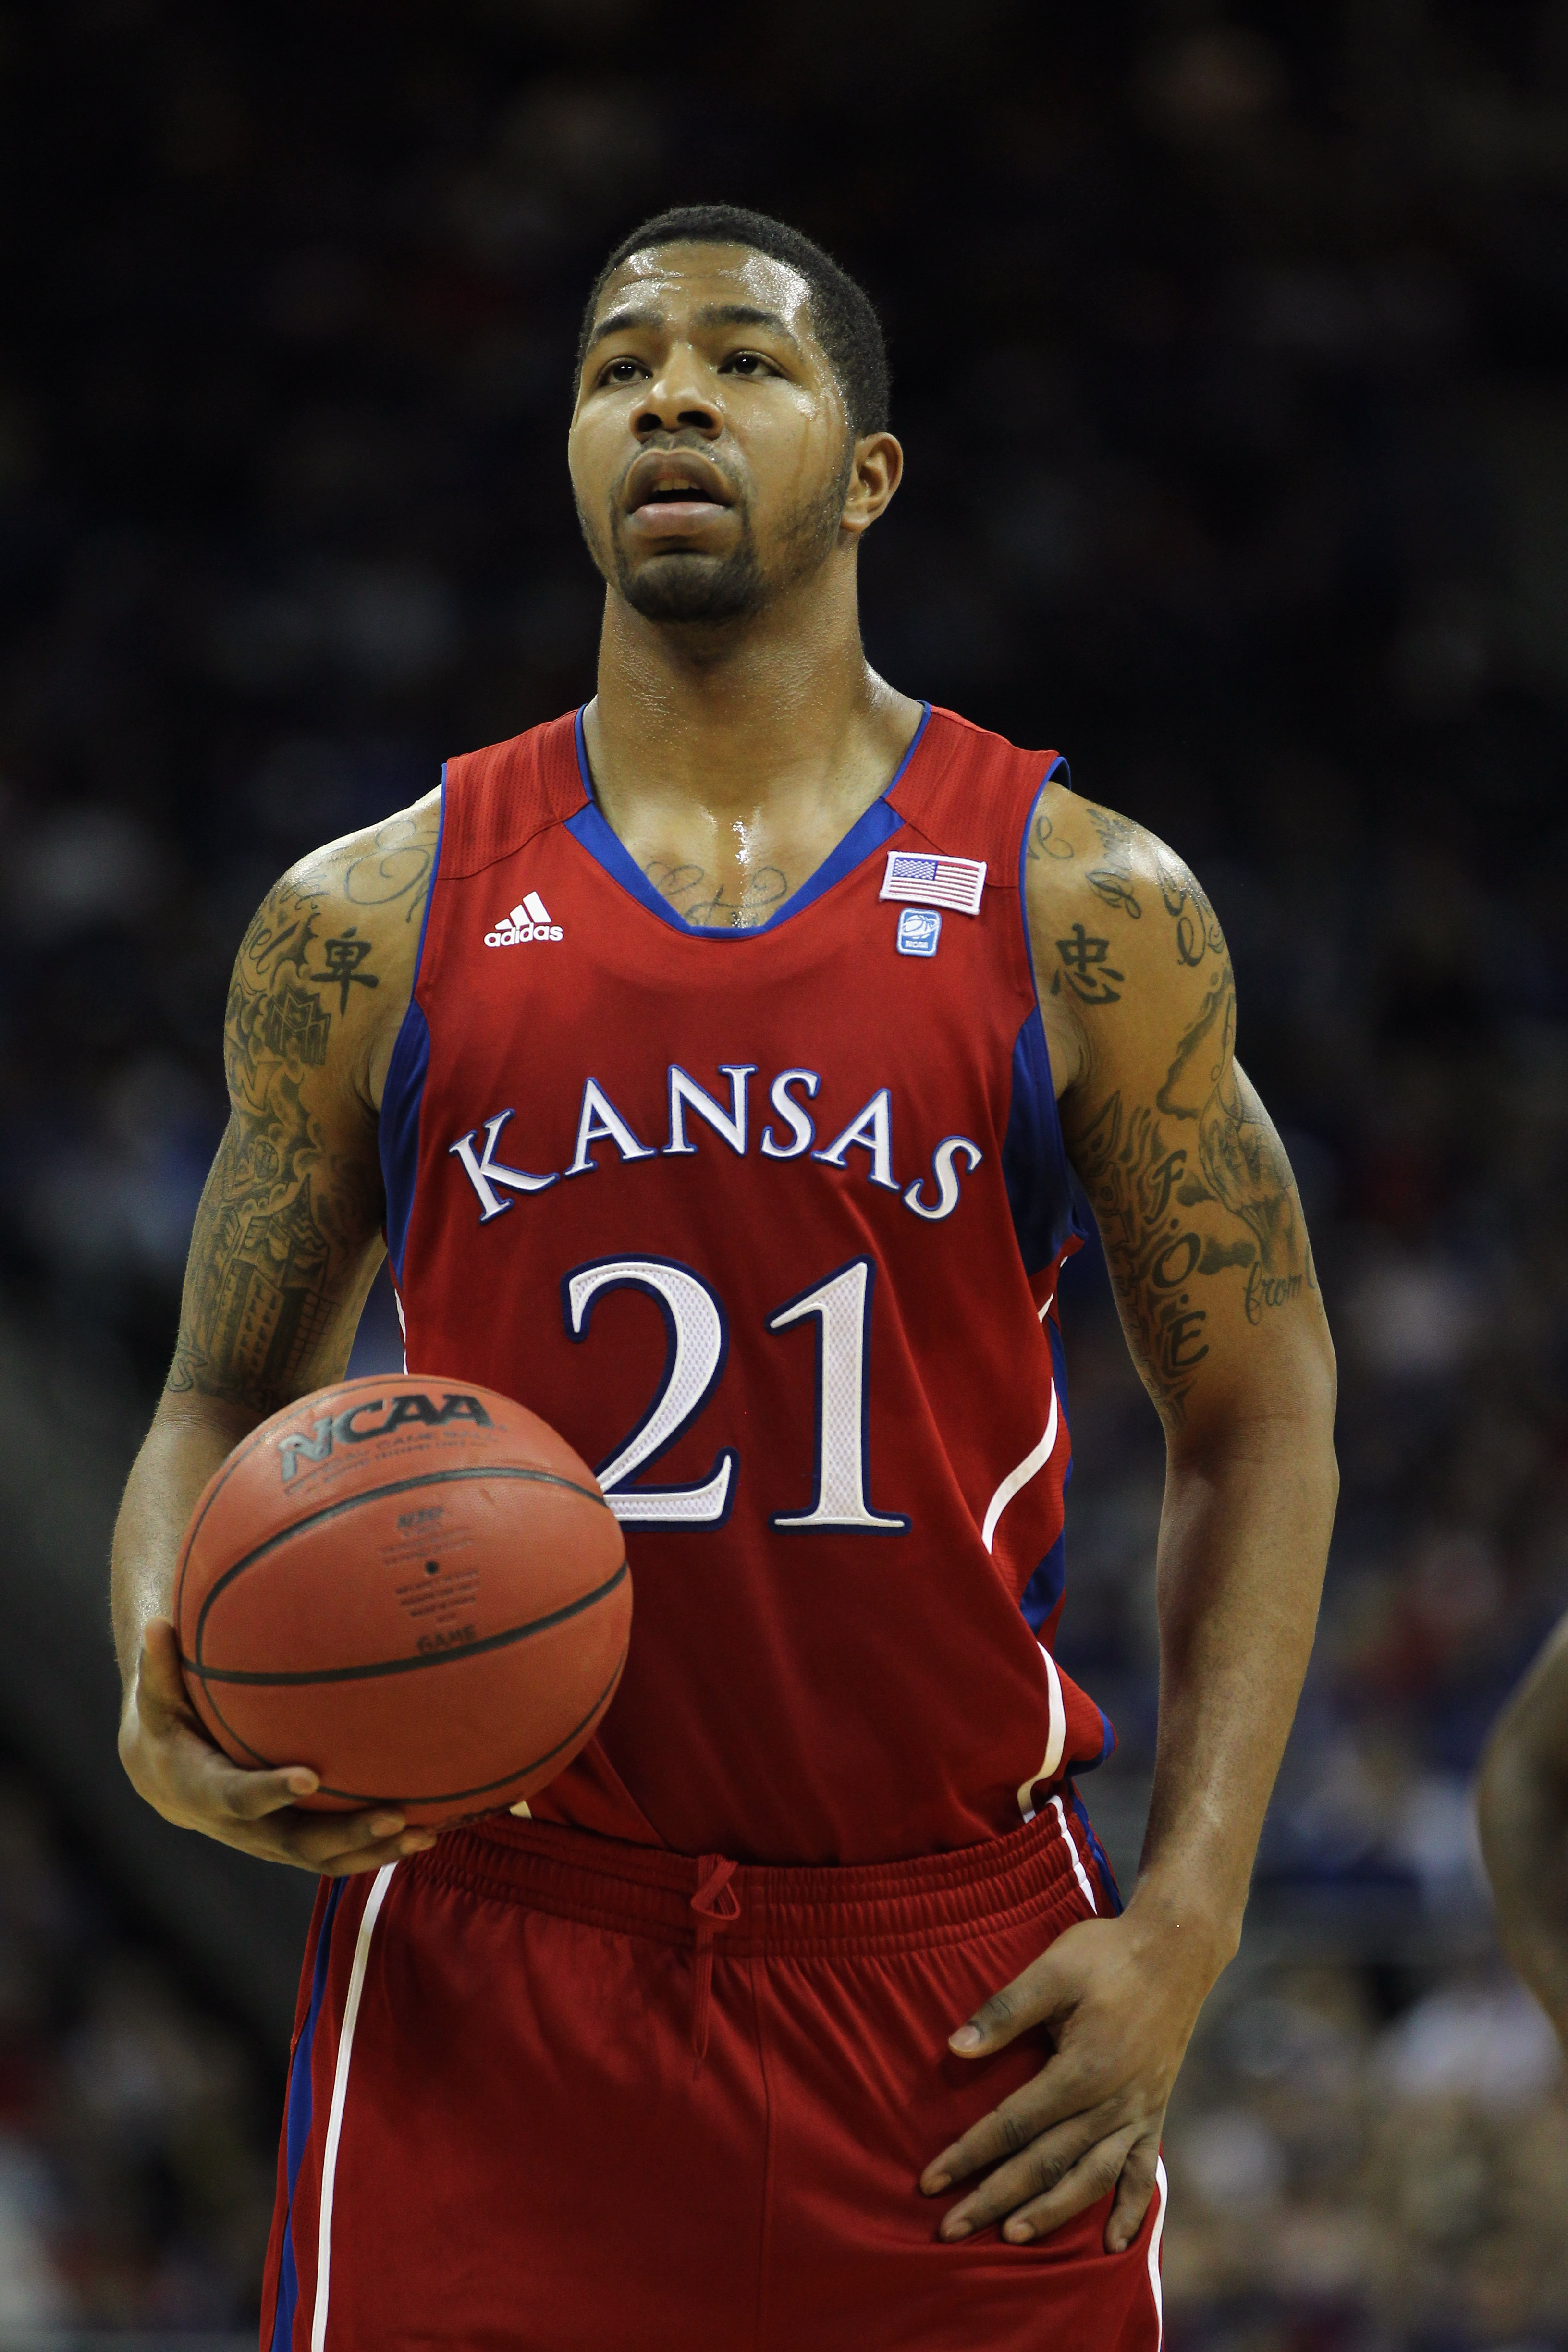 KANSAS CITY, MO - DECEMBER 11:  Markieff Morris #21 of the Kansas Jayhawks in action during the game against the Colorado State Rams on December 11, 2010 at the Sprint Center in Kansas City, Missouri.  (Photo by Jamie Squire/Getty Images)